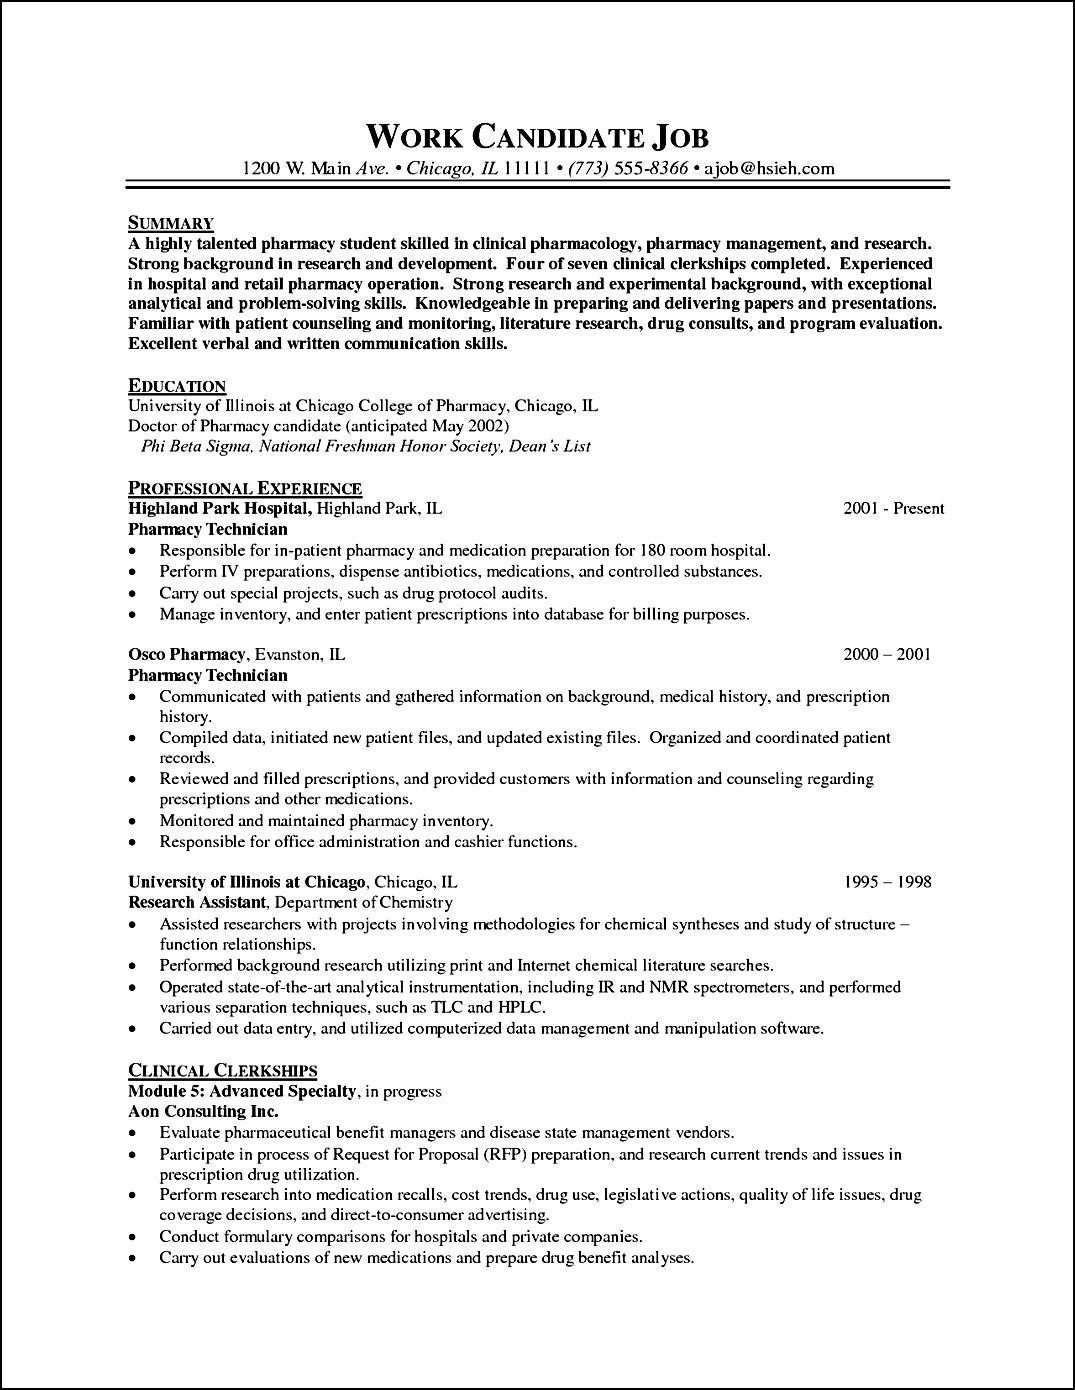 Pharmacy Curriculum Vitae Examples Pharmacy Curriculum Vitae Example Free Samples